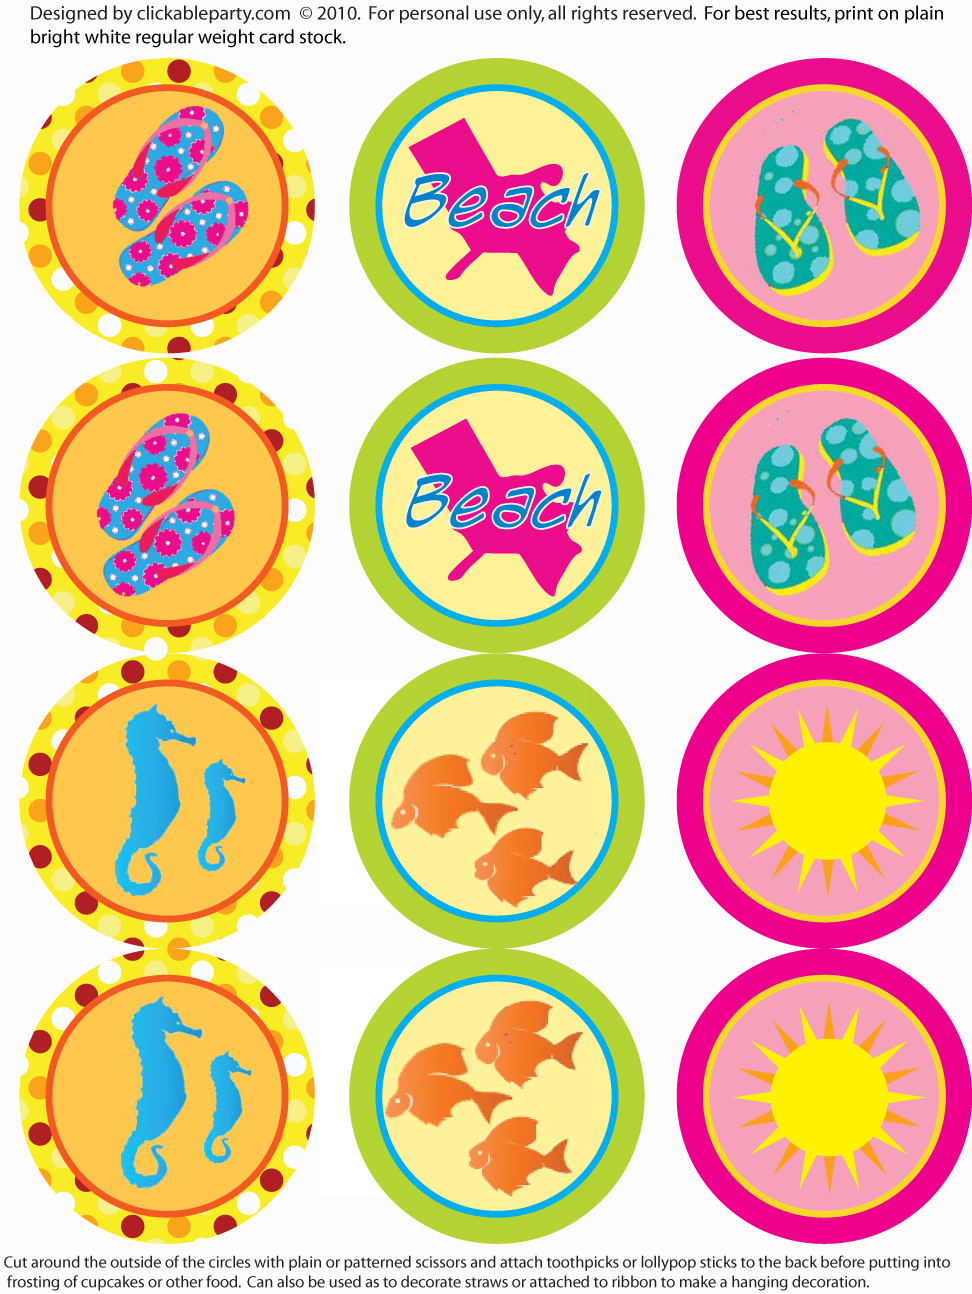 Free Summer Party Printables From Clickable Party   Catch My Party - Free Printable Party Circles